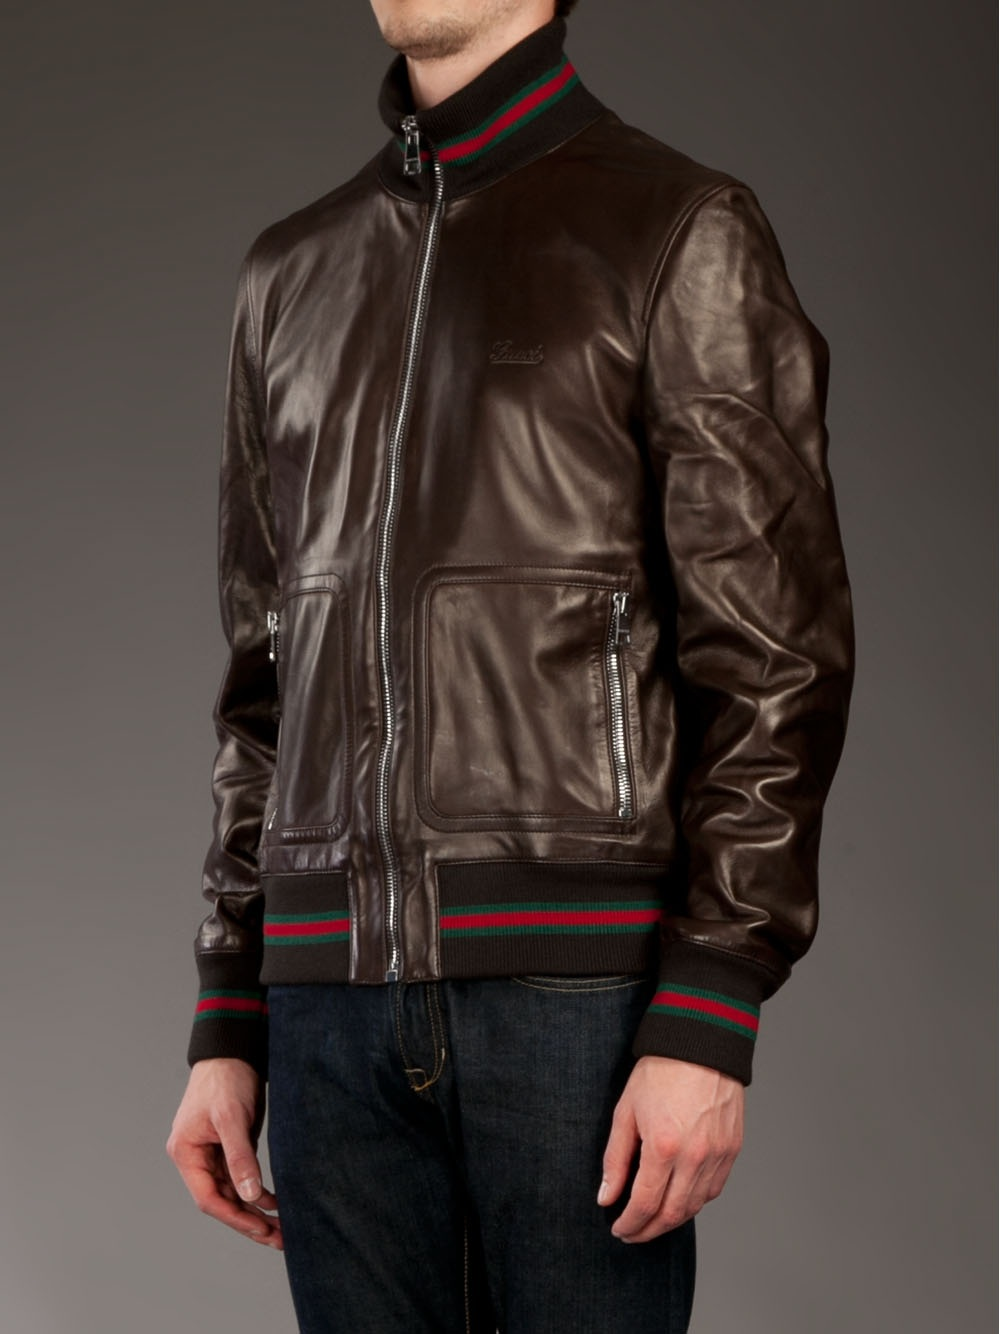 Gucci Leather Jacket in Brown for Men - Lyst 5eb652f382d8